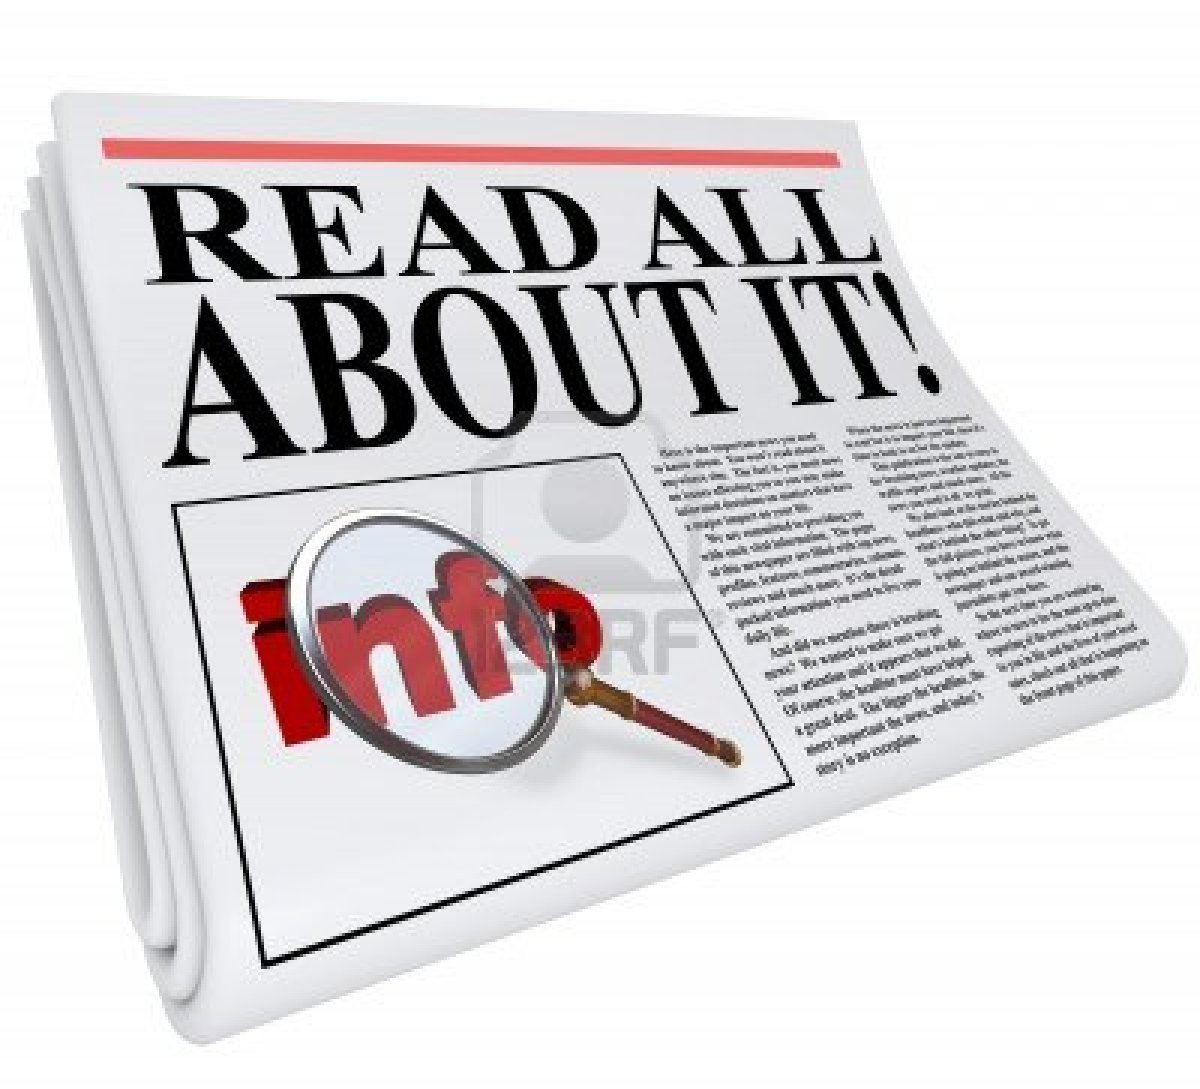 13966970-the-headline-read-all-about-it-on-a-newspaper-with-a-photo-of-a-magnifying-glass-on-the-word-info-il1.jpg